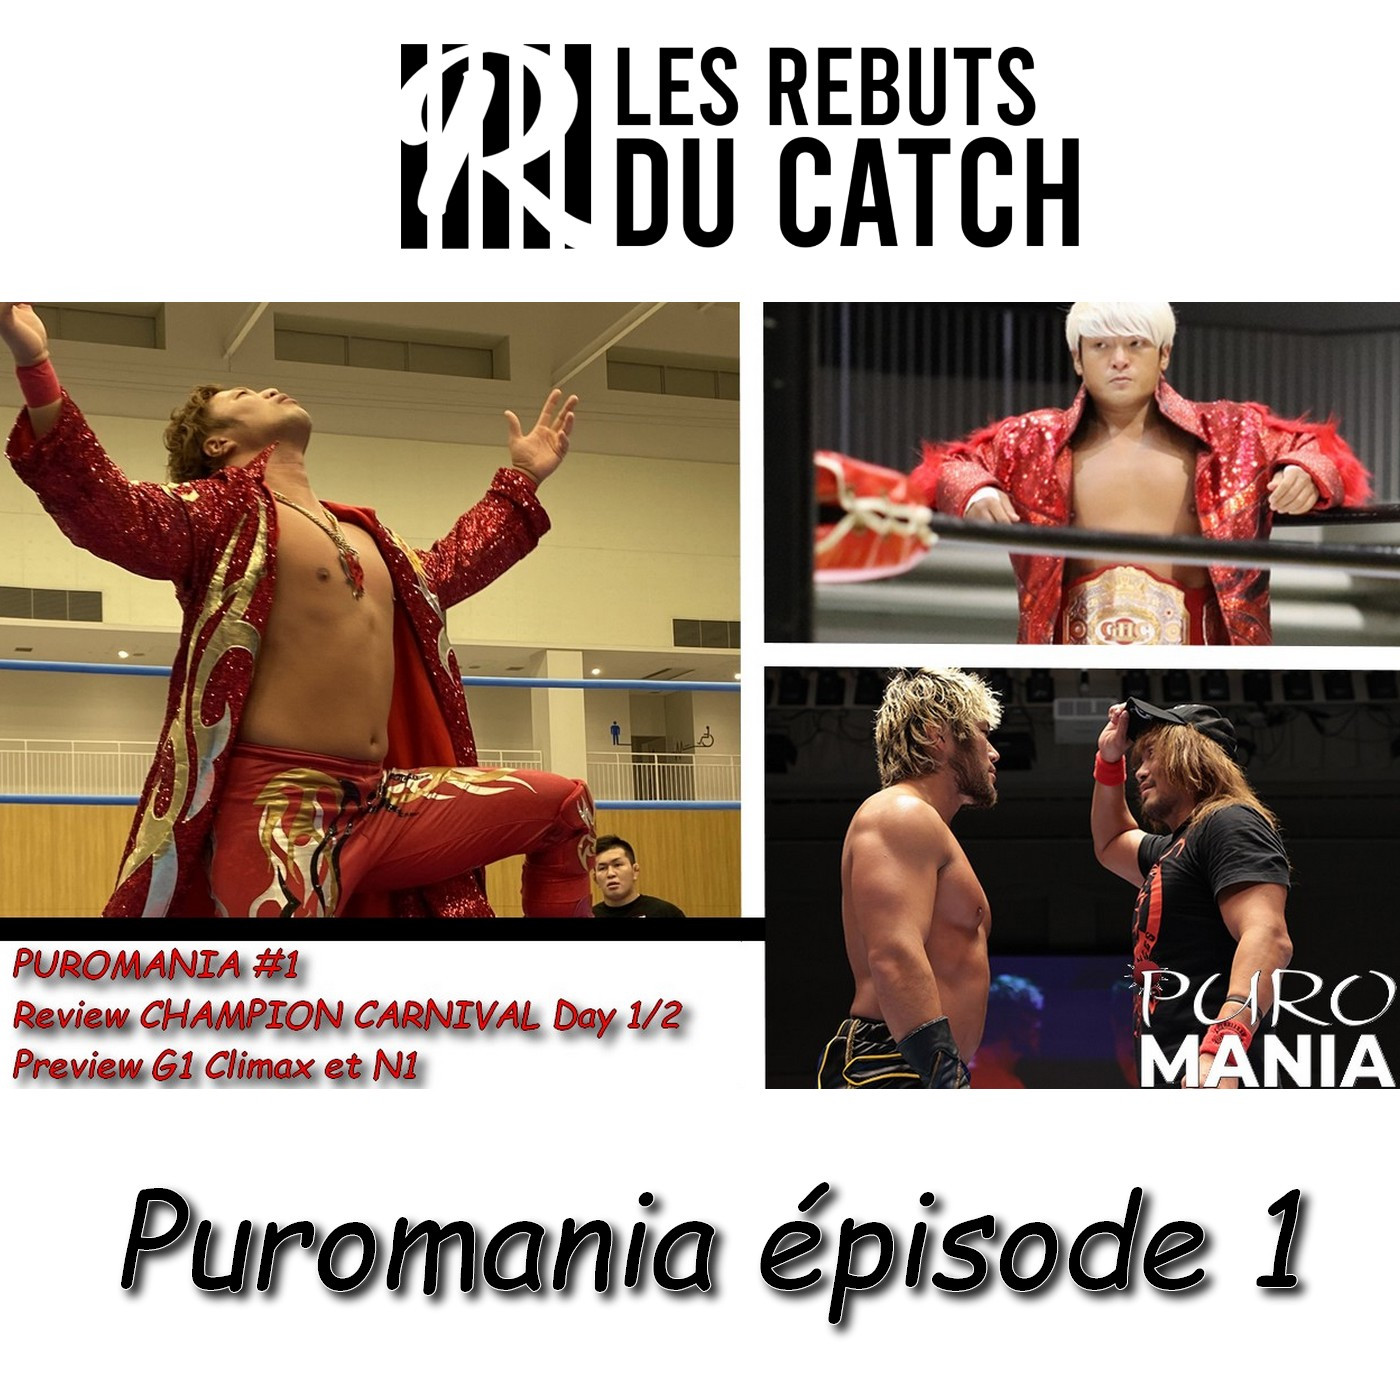 PuroMania #1 Review Champion Carnival Day 1/2 + Preview NOAH N1 et G1 Climax